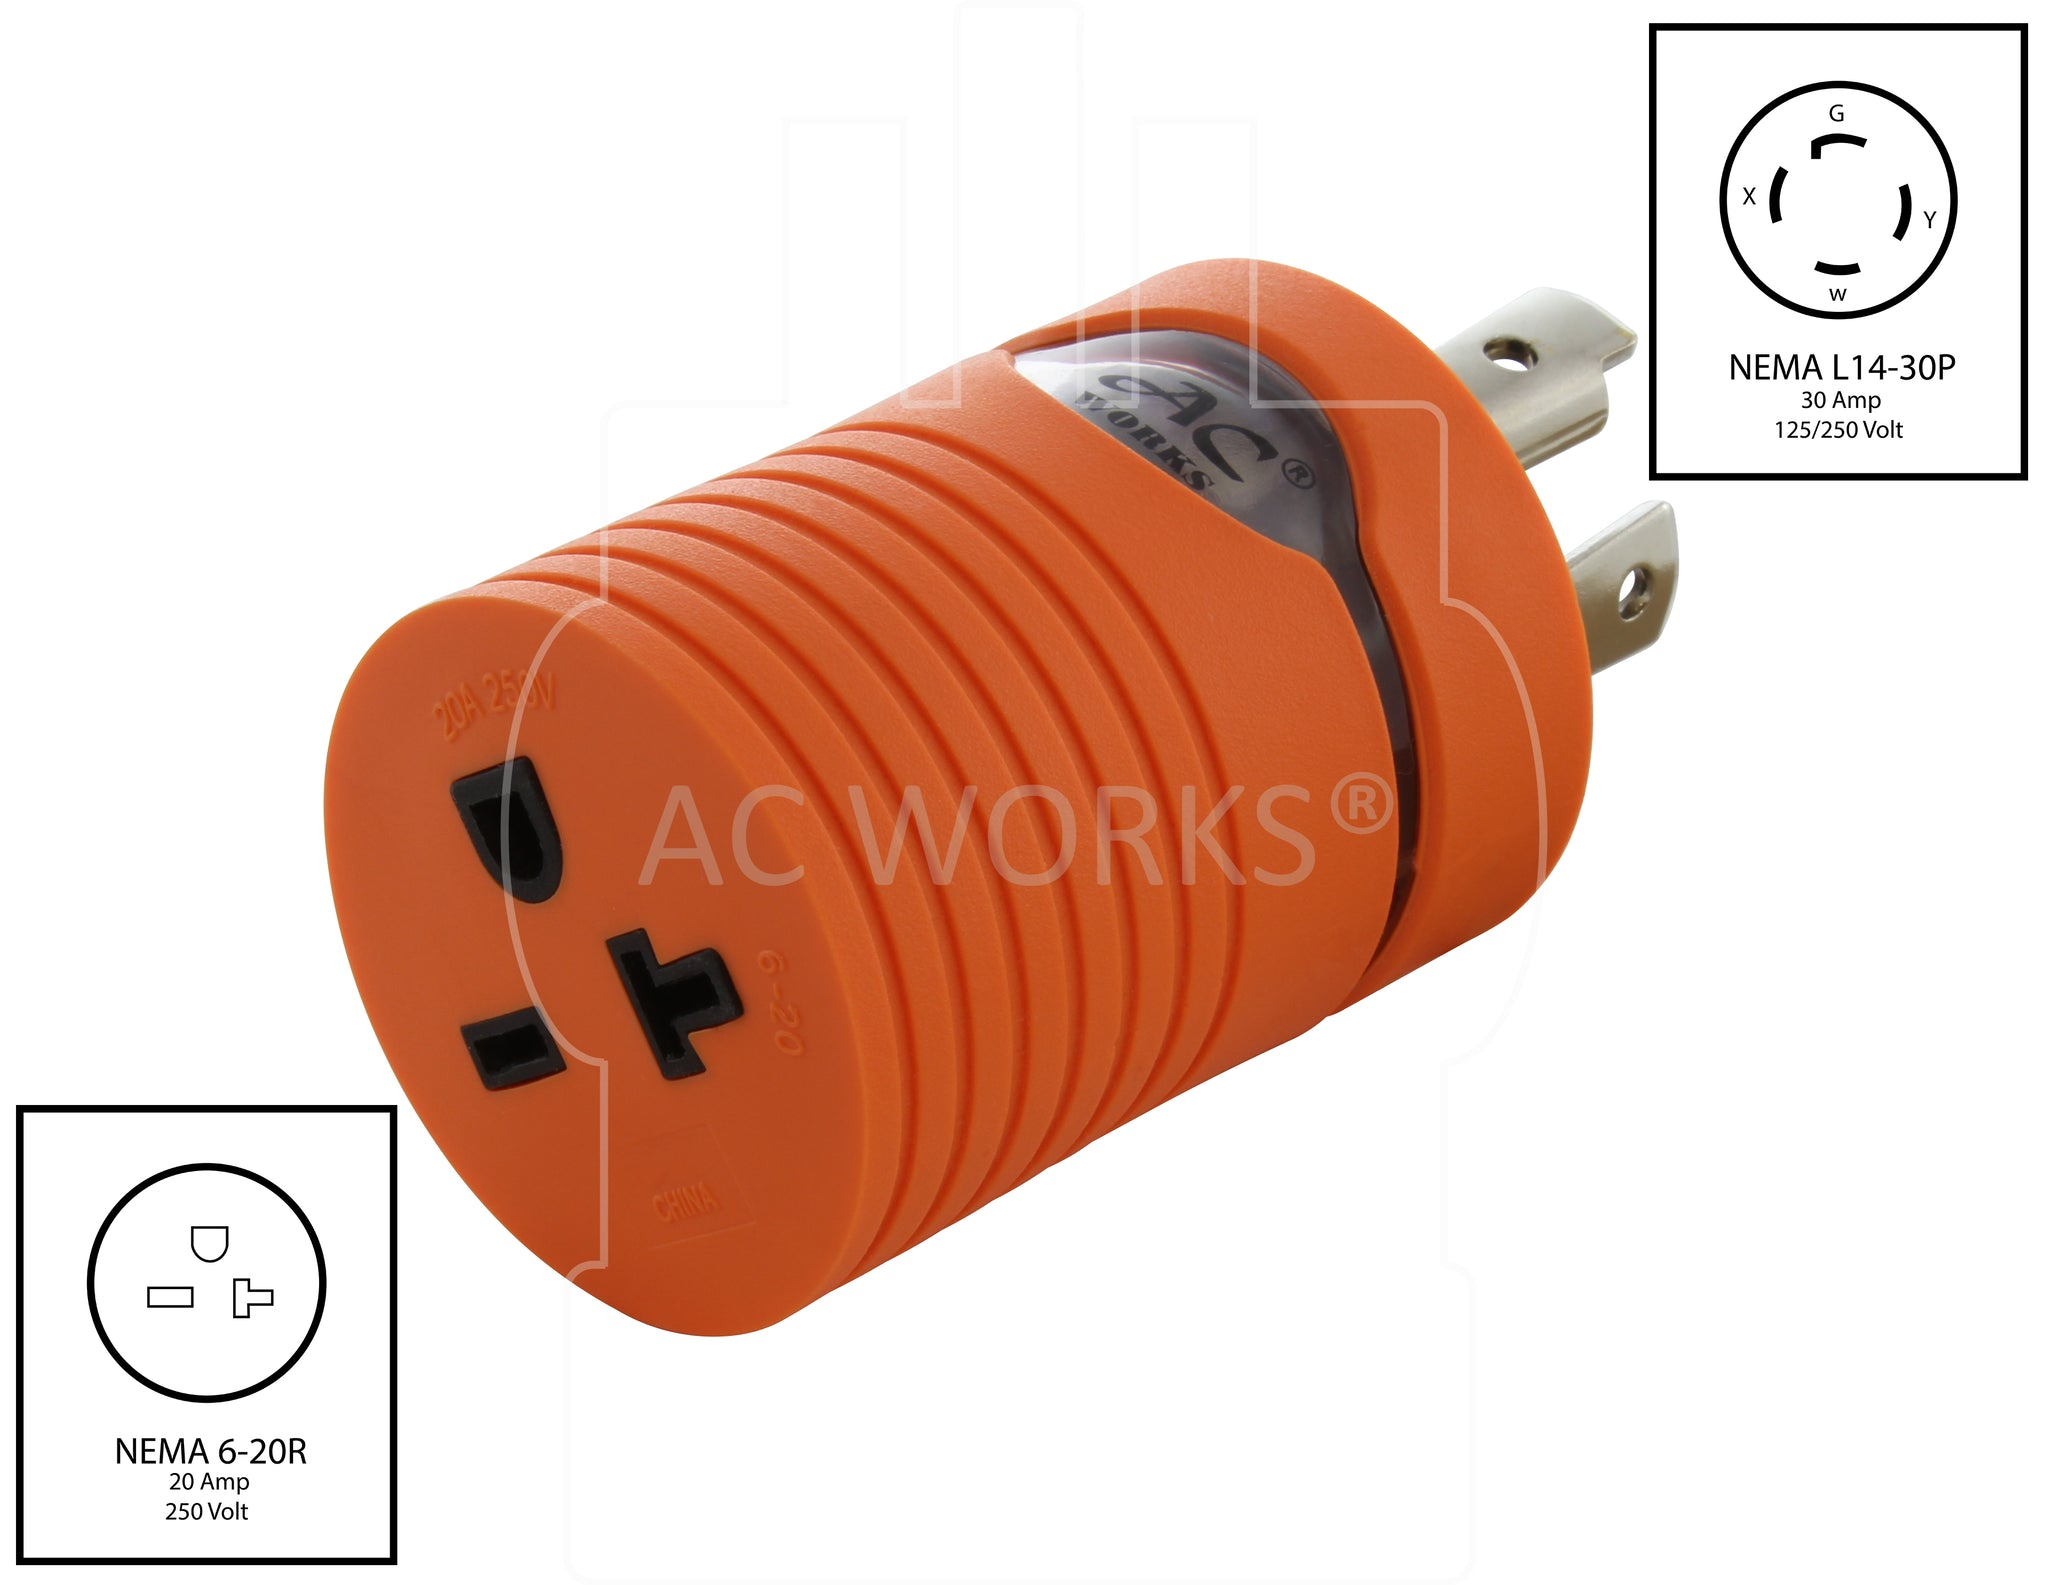 Nema L14 30p 30amp 125 250volt 4 Prong Locking To 6 15 20r 250v Wiring Diagram For 20p Plug Ac Works